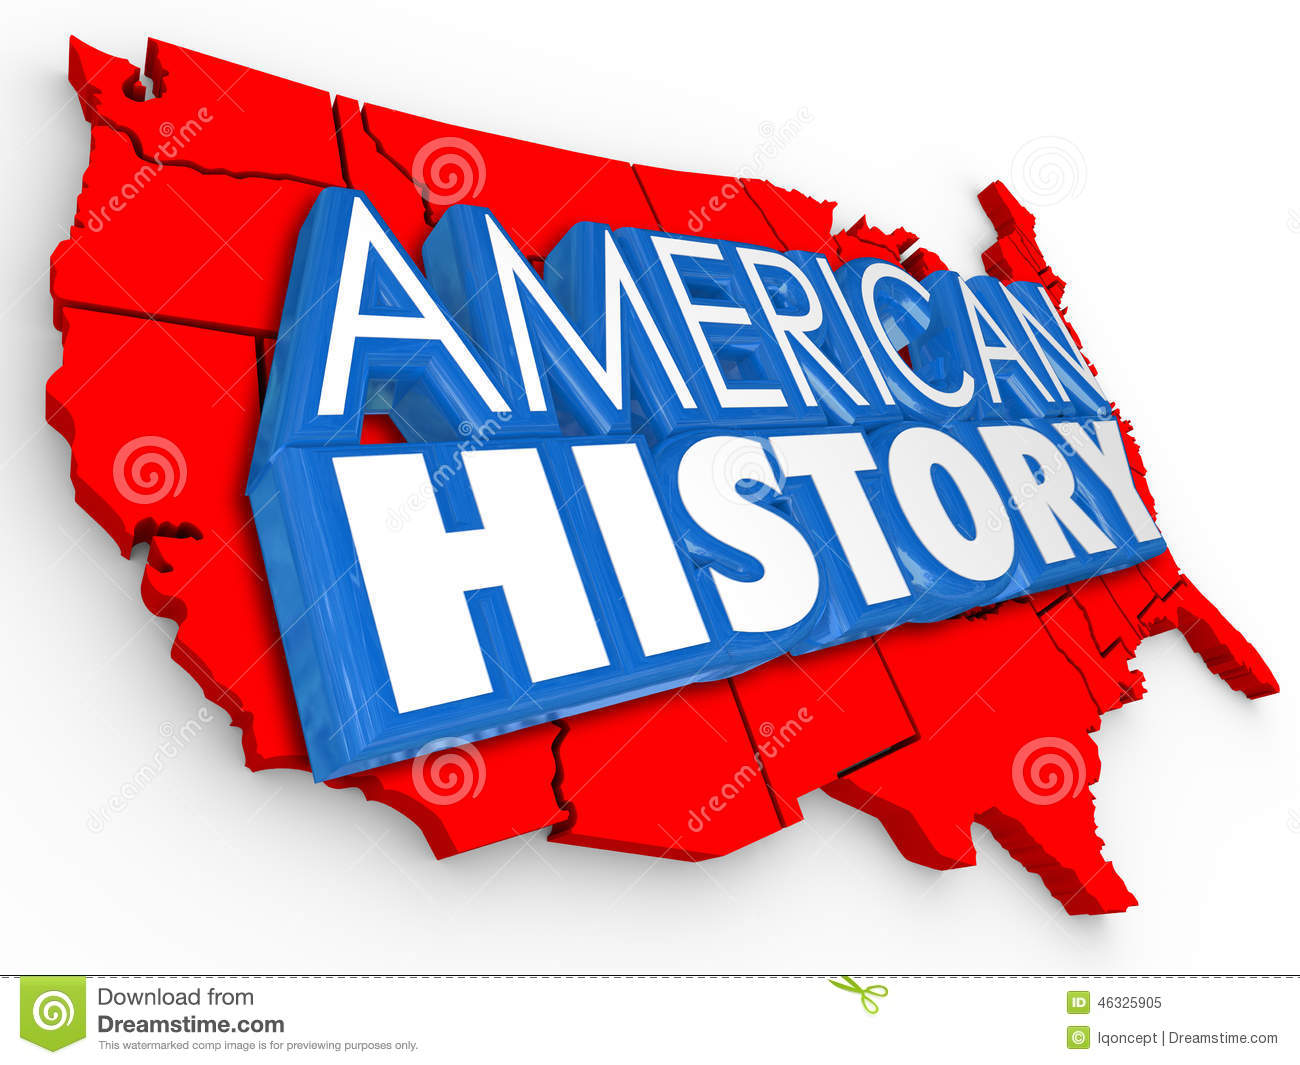 American History D Words USA Map Learning United States Educait - Political map us red blue history